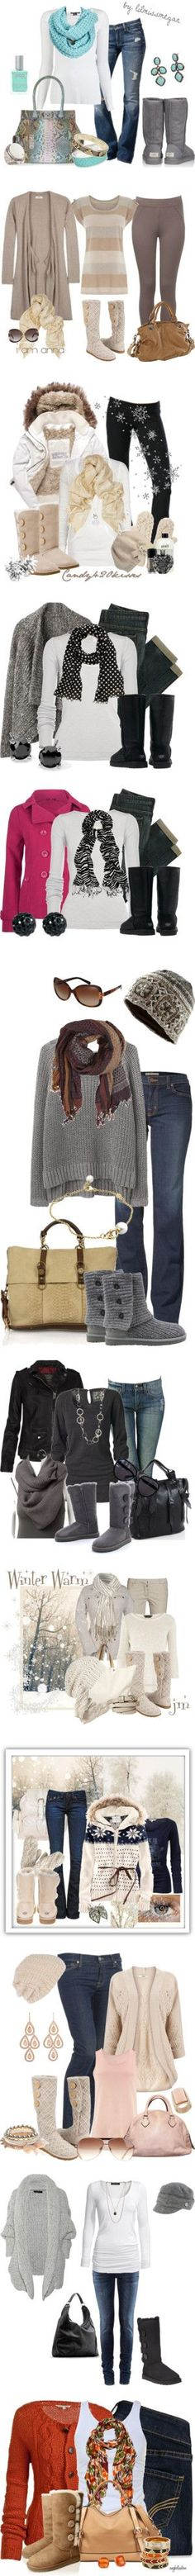 These are great winter outfits featuring many different styles of UGG Boots! So cute!